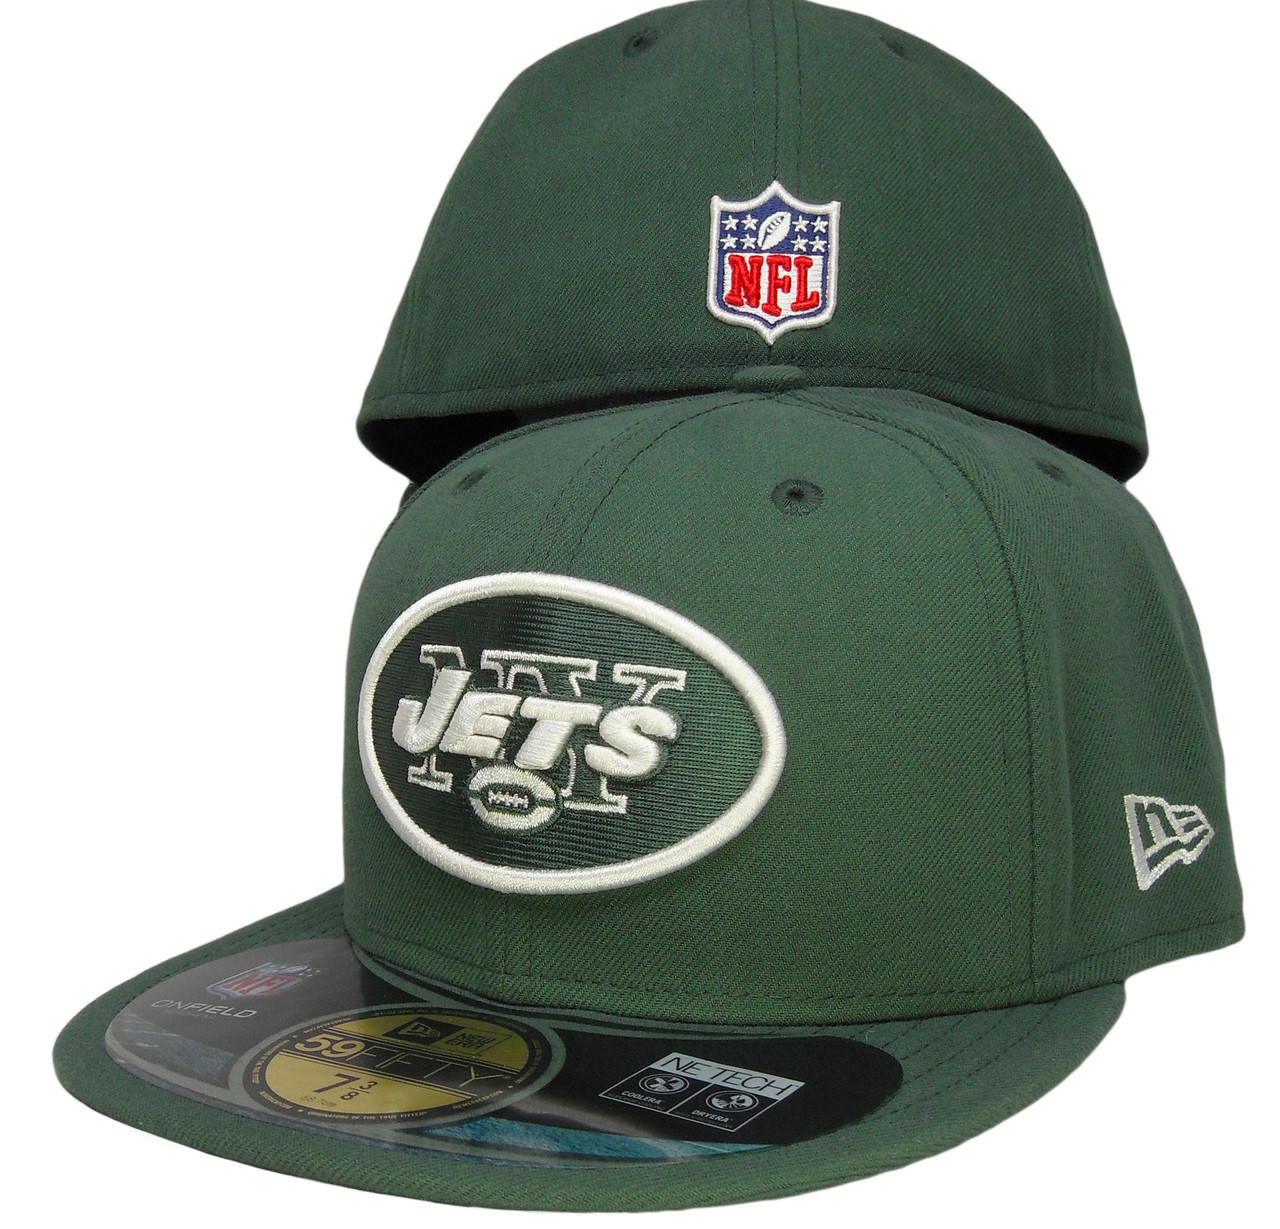 74da3b00be7 New York Jets New Era 59Fifty Onfield Fitted Hat - Hunter Green ...